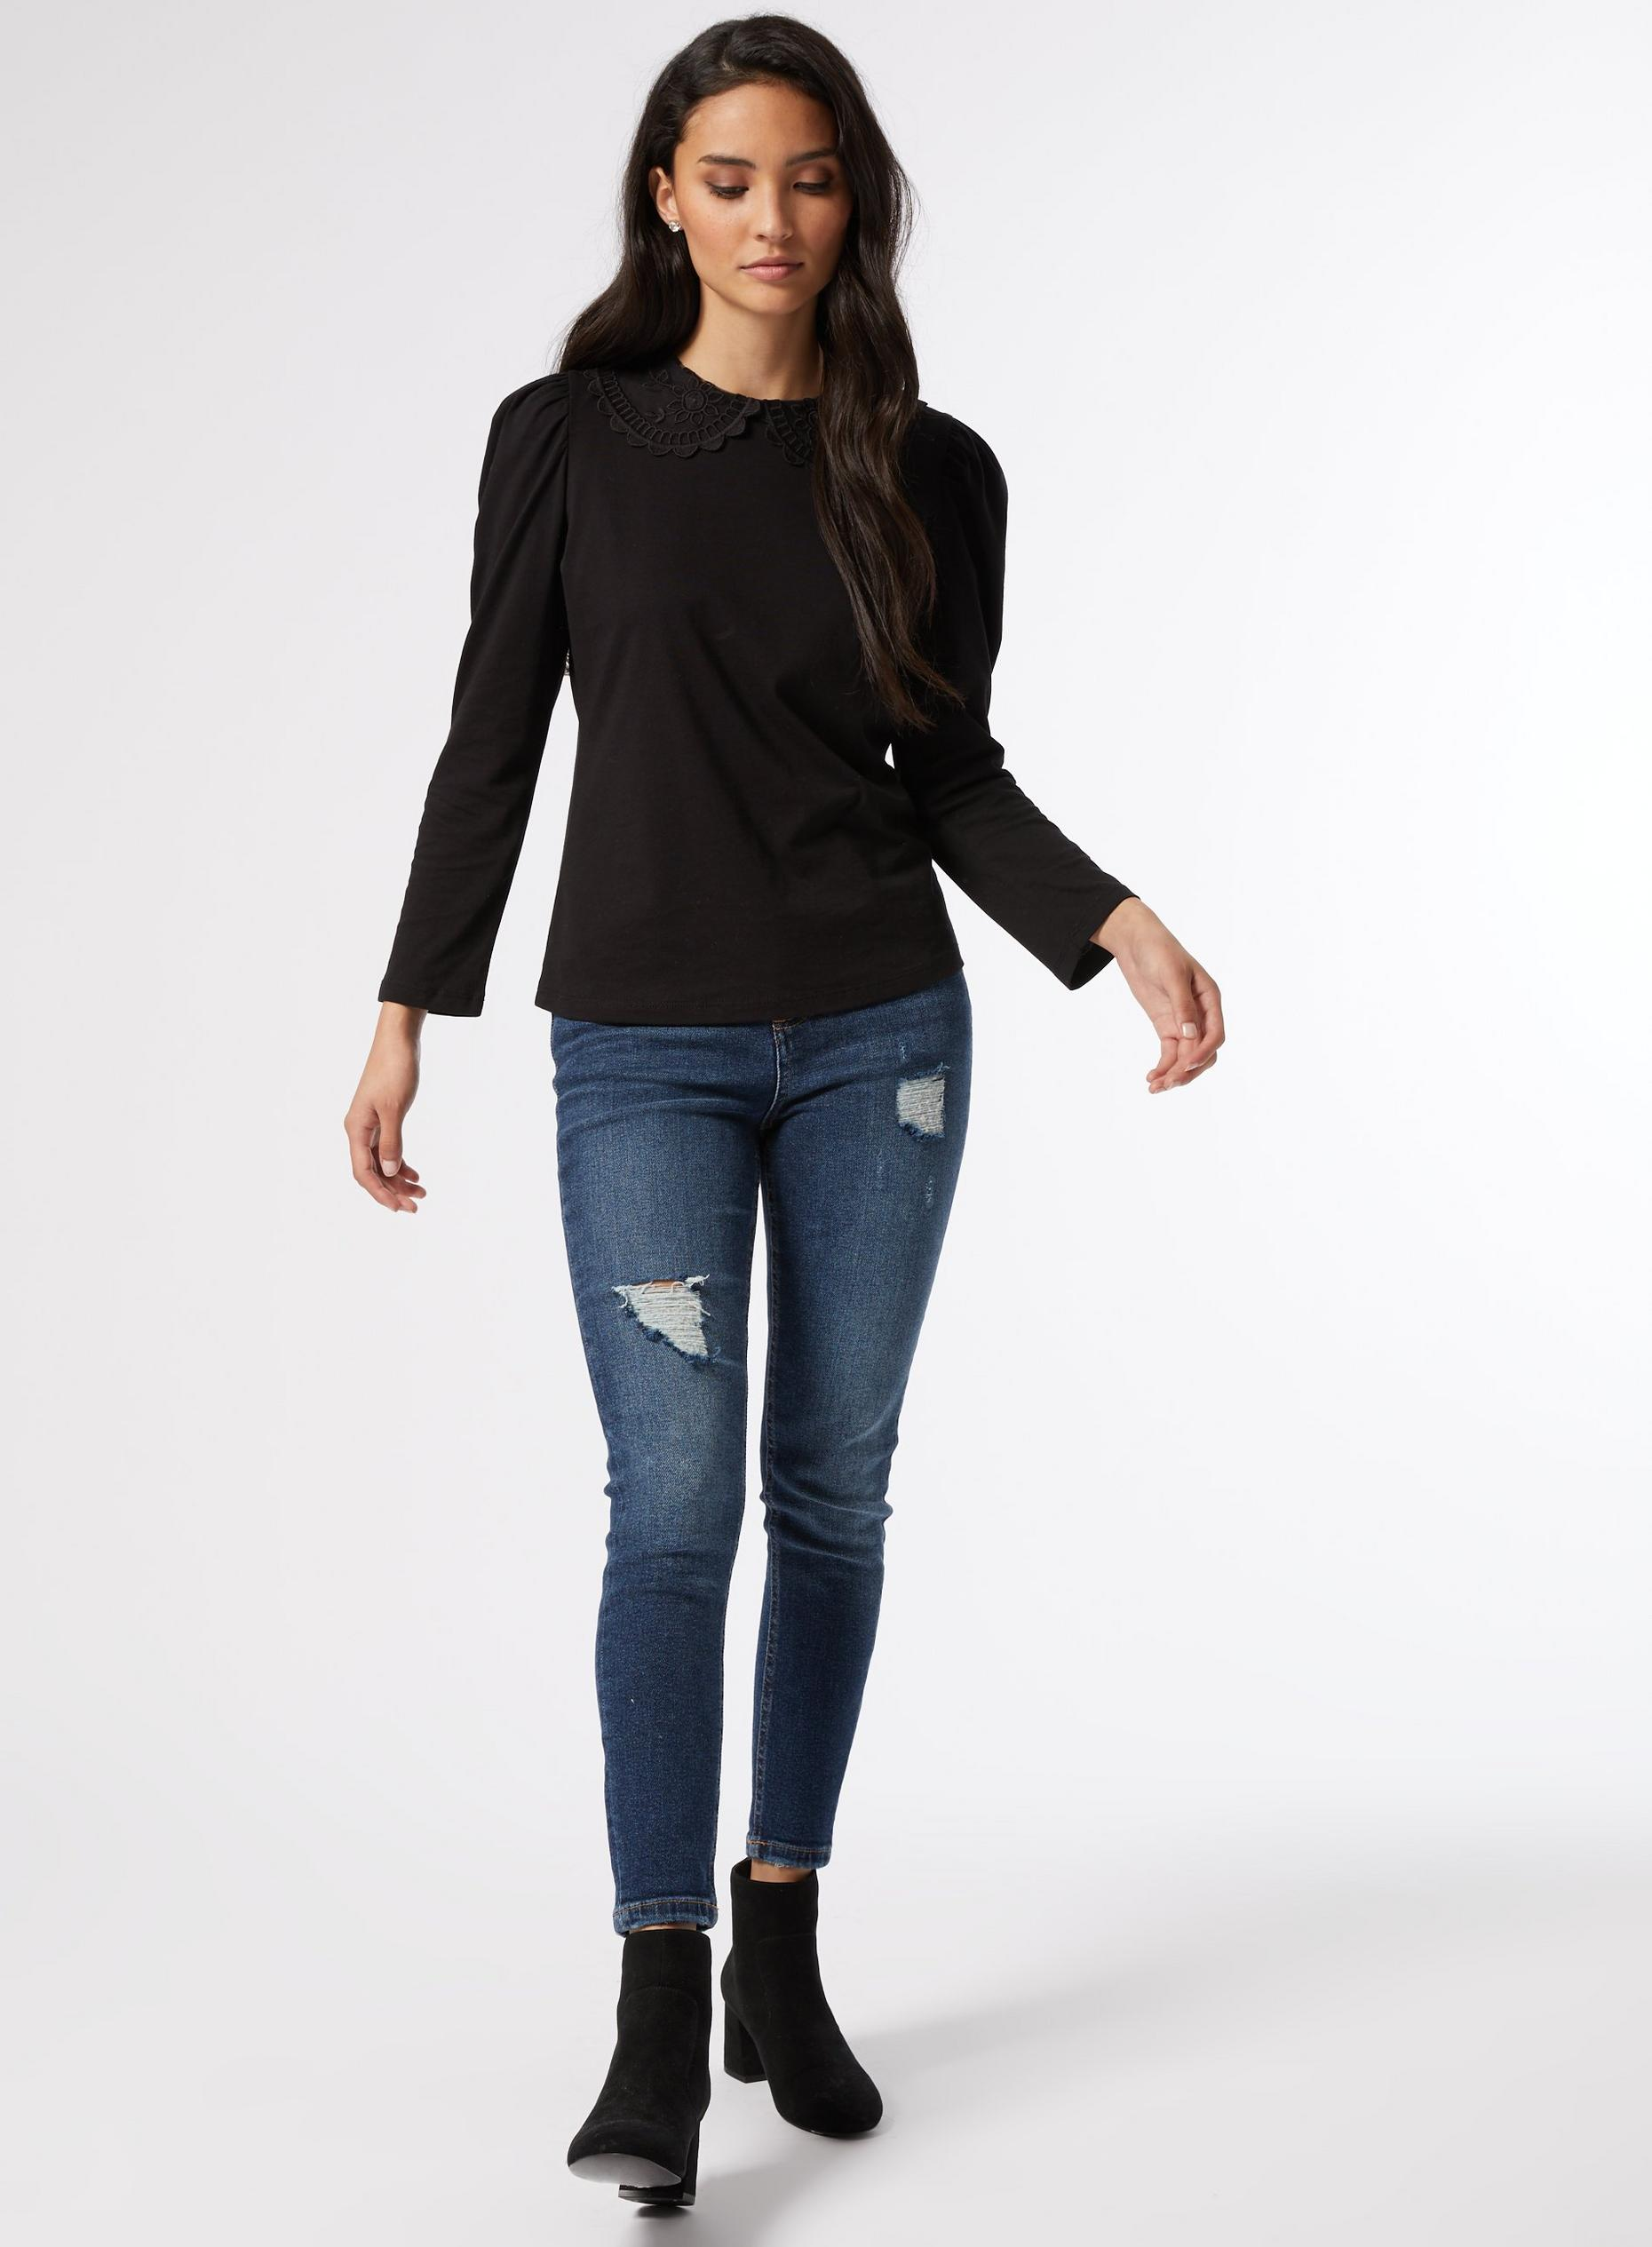 Petite Black Puff Sleeve Top